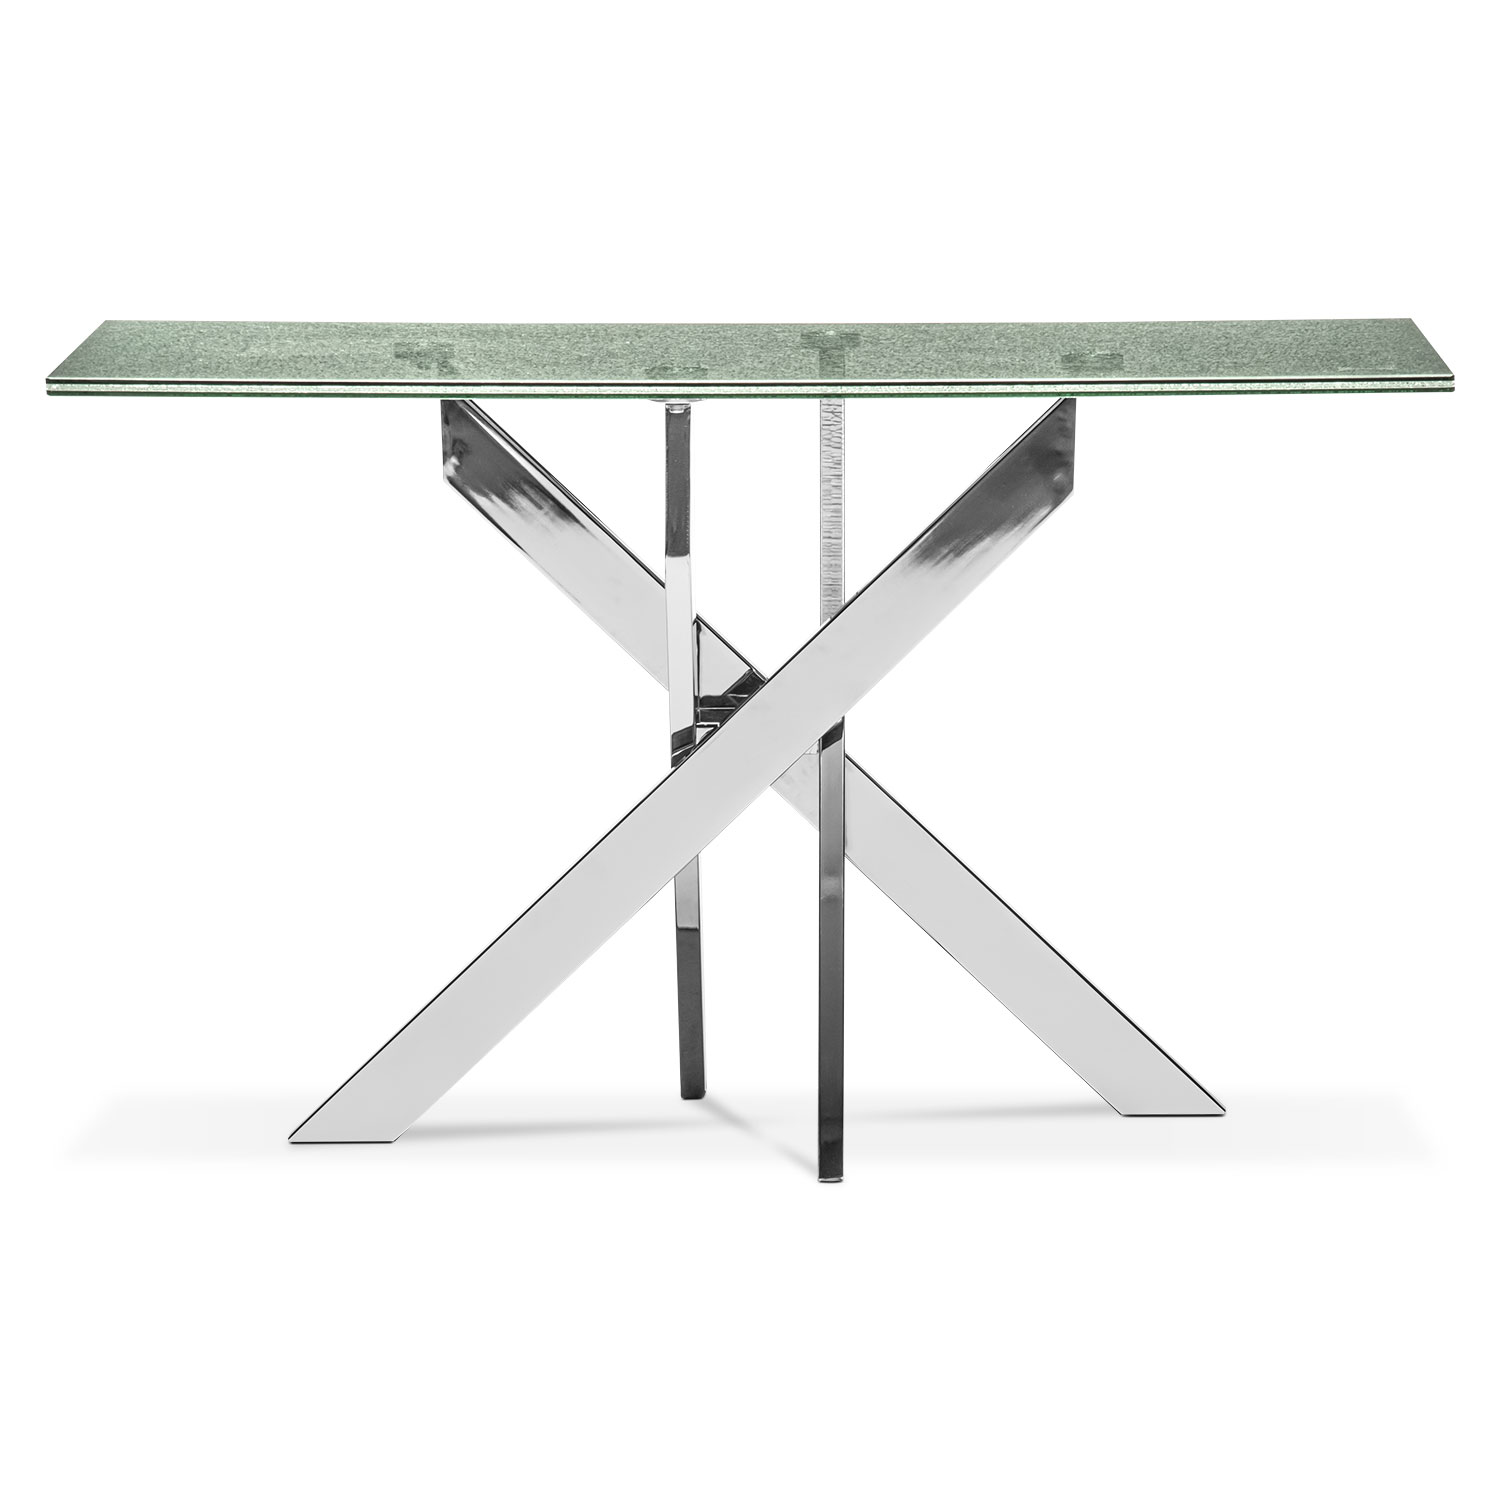 Celestial console table glass and chrome value city for Sofa table glass replacement